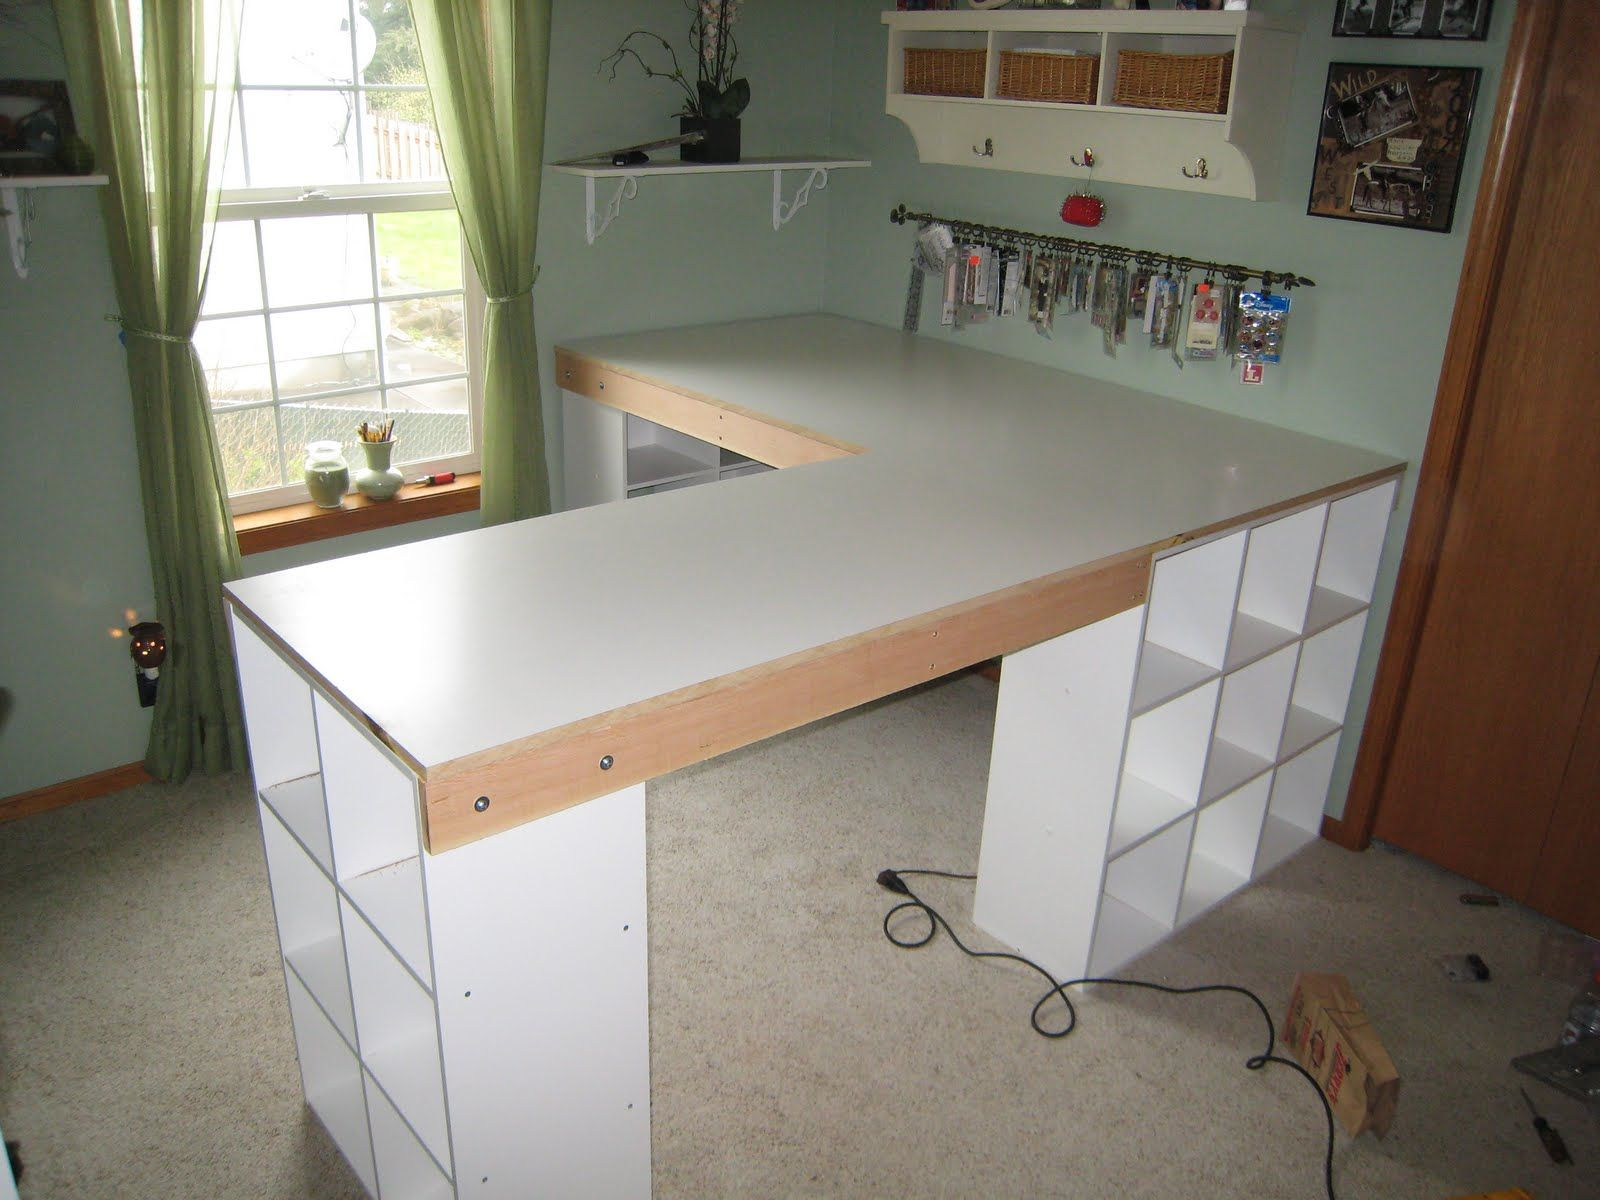 Diy ikea sewing table  DO IT YOURSELF WHITE CRAFT DESK HOW TO BUILD A CUSTOM CRAFT DESK